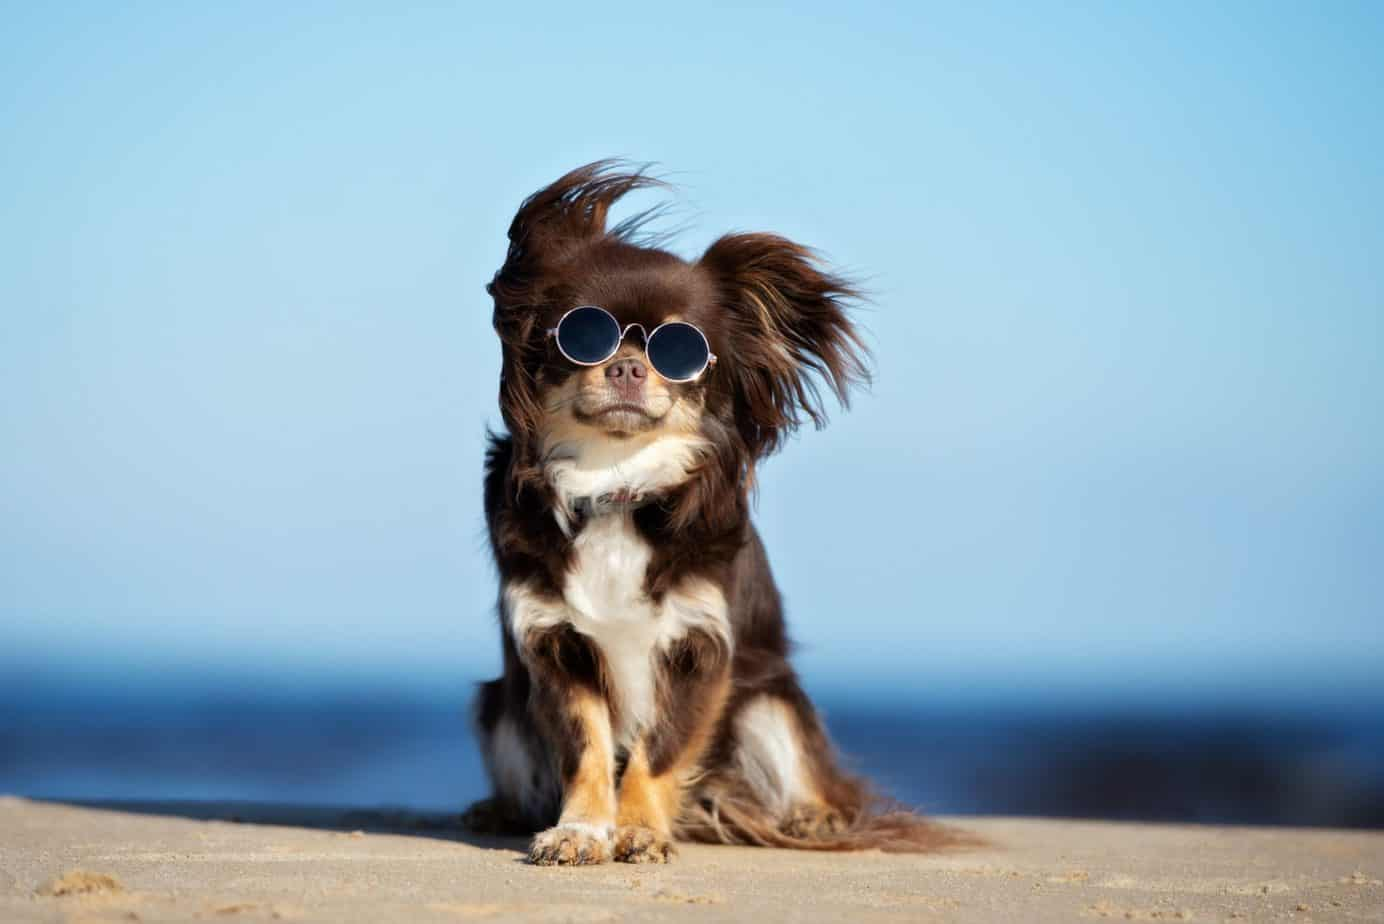 Happy chihuahua wearing sunglasses sits on the beach.